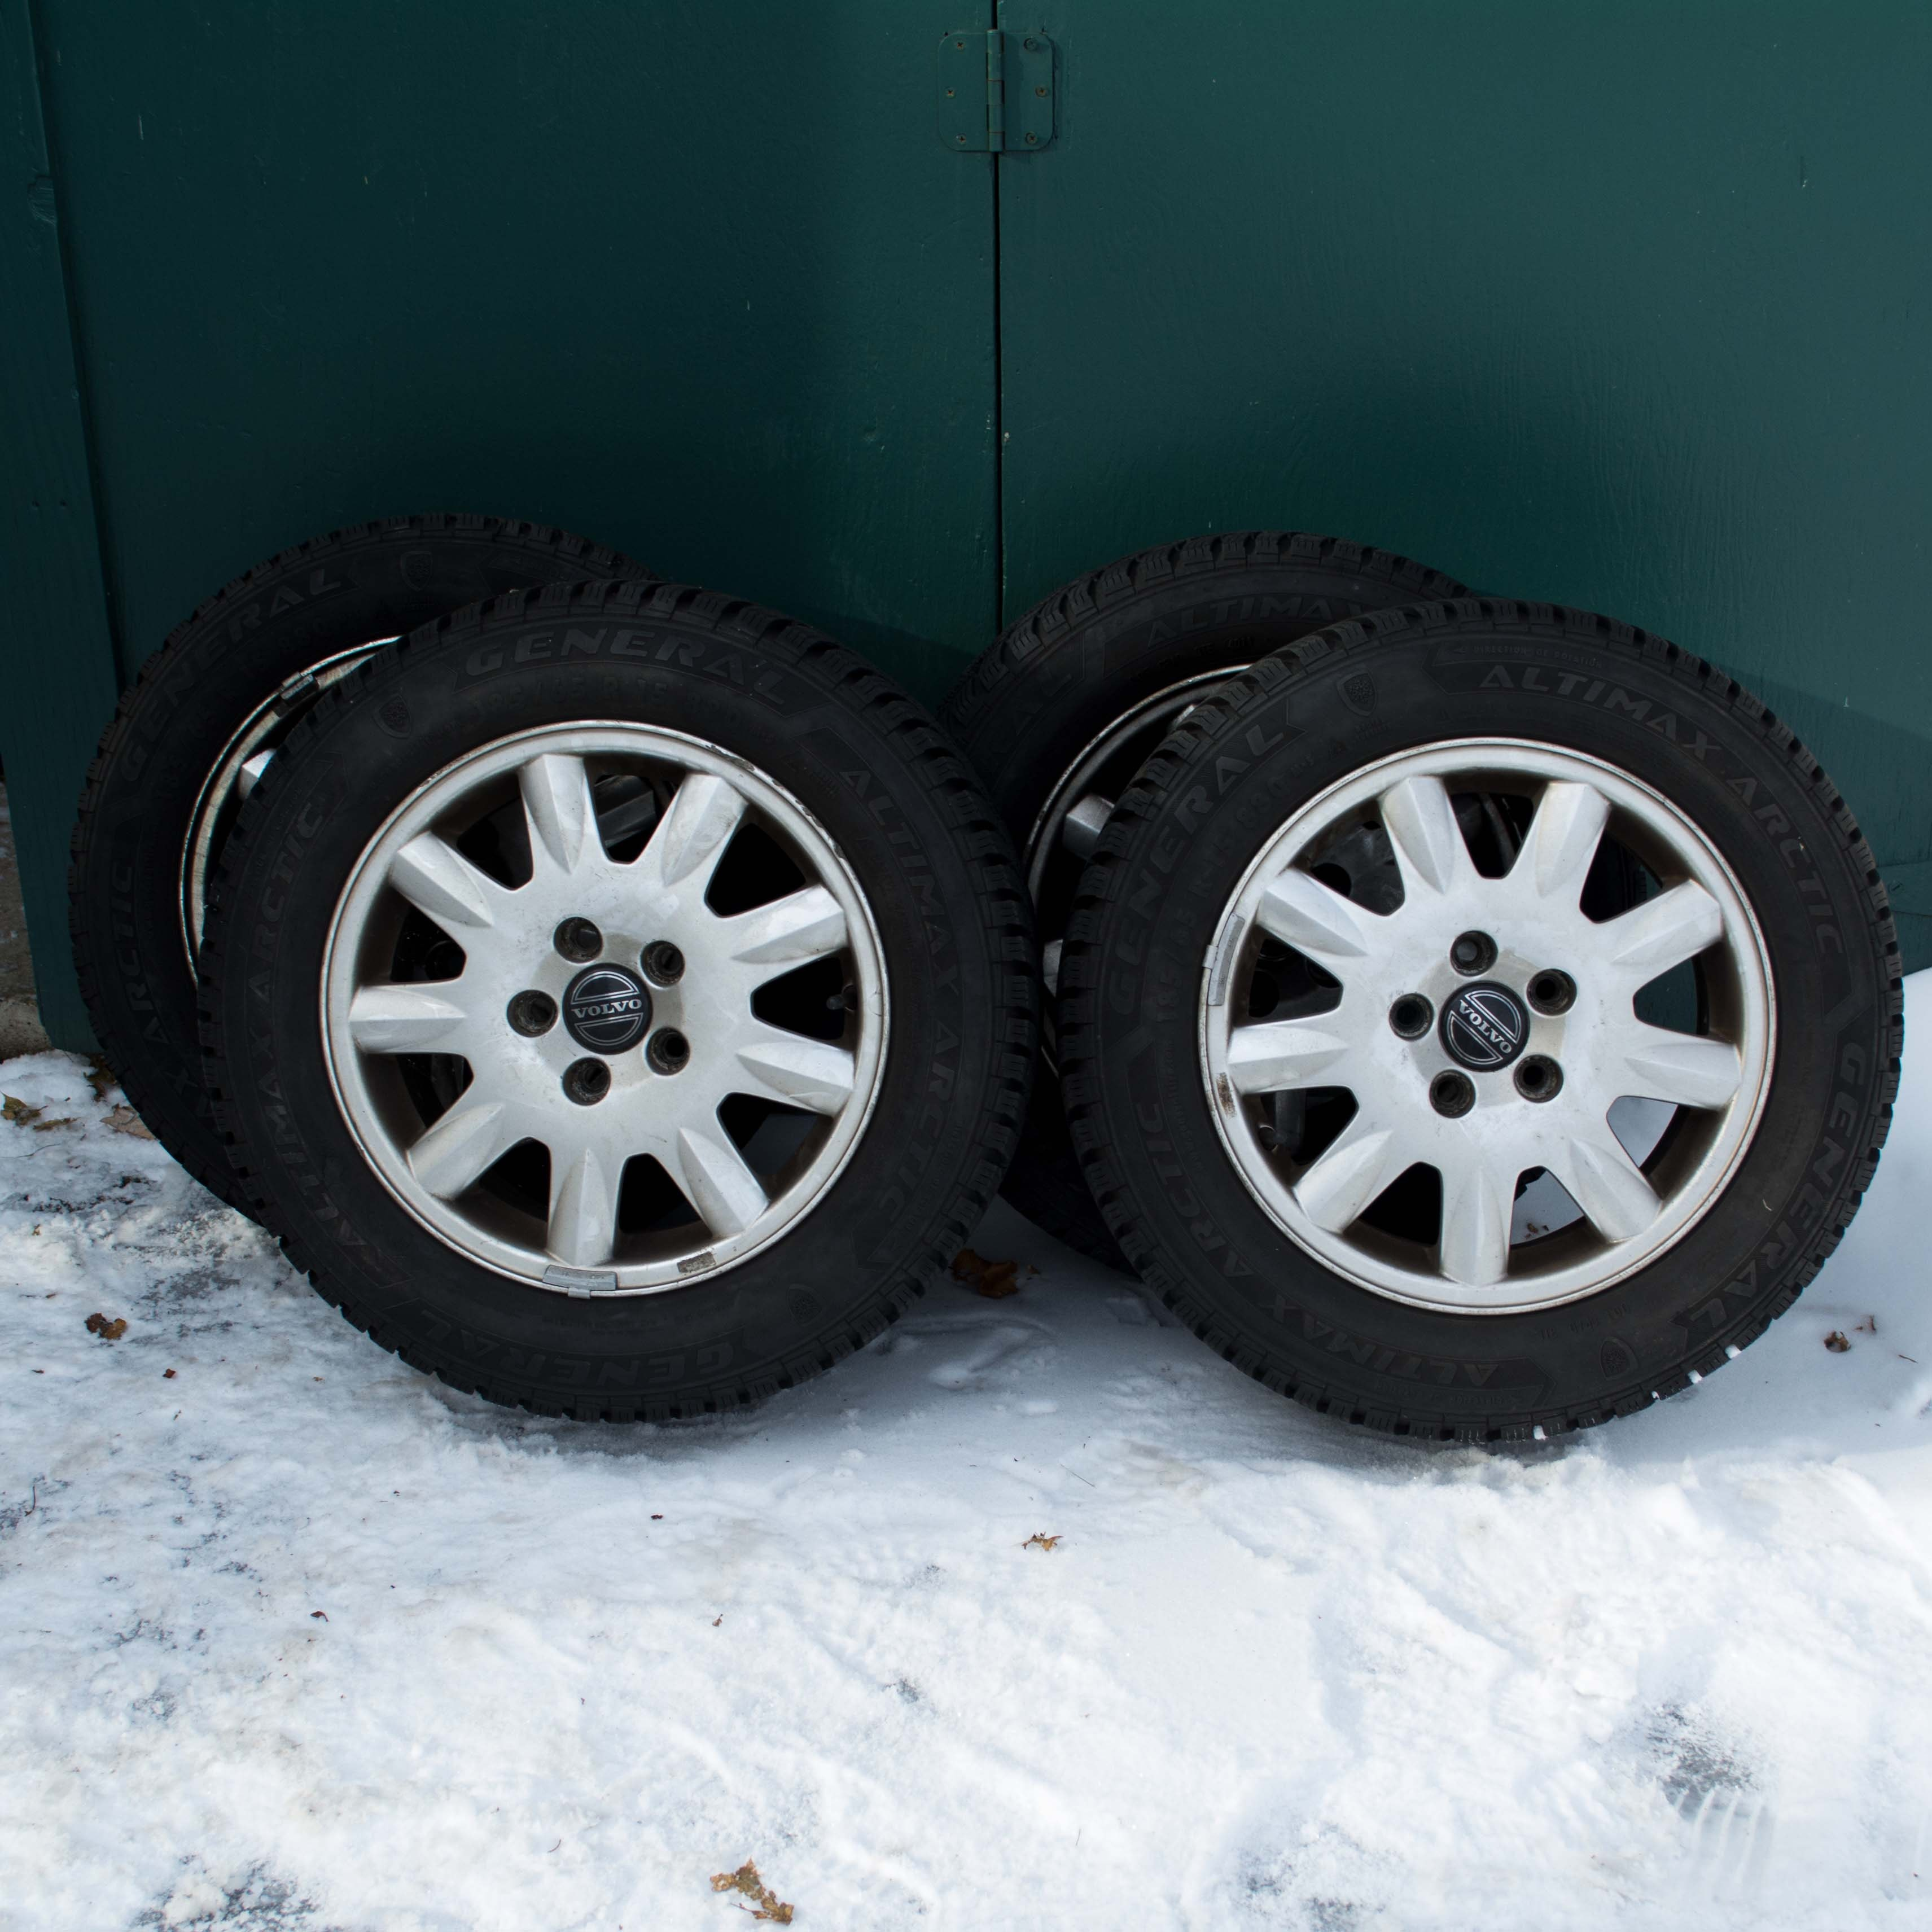 Four General Altimax Artic Winter Tires and Volvo Wheels